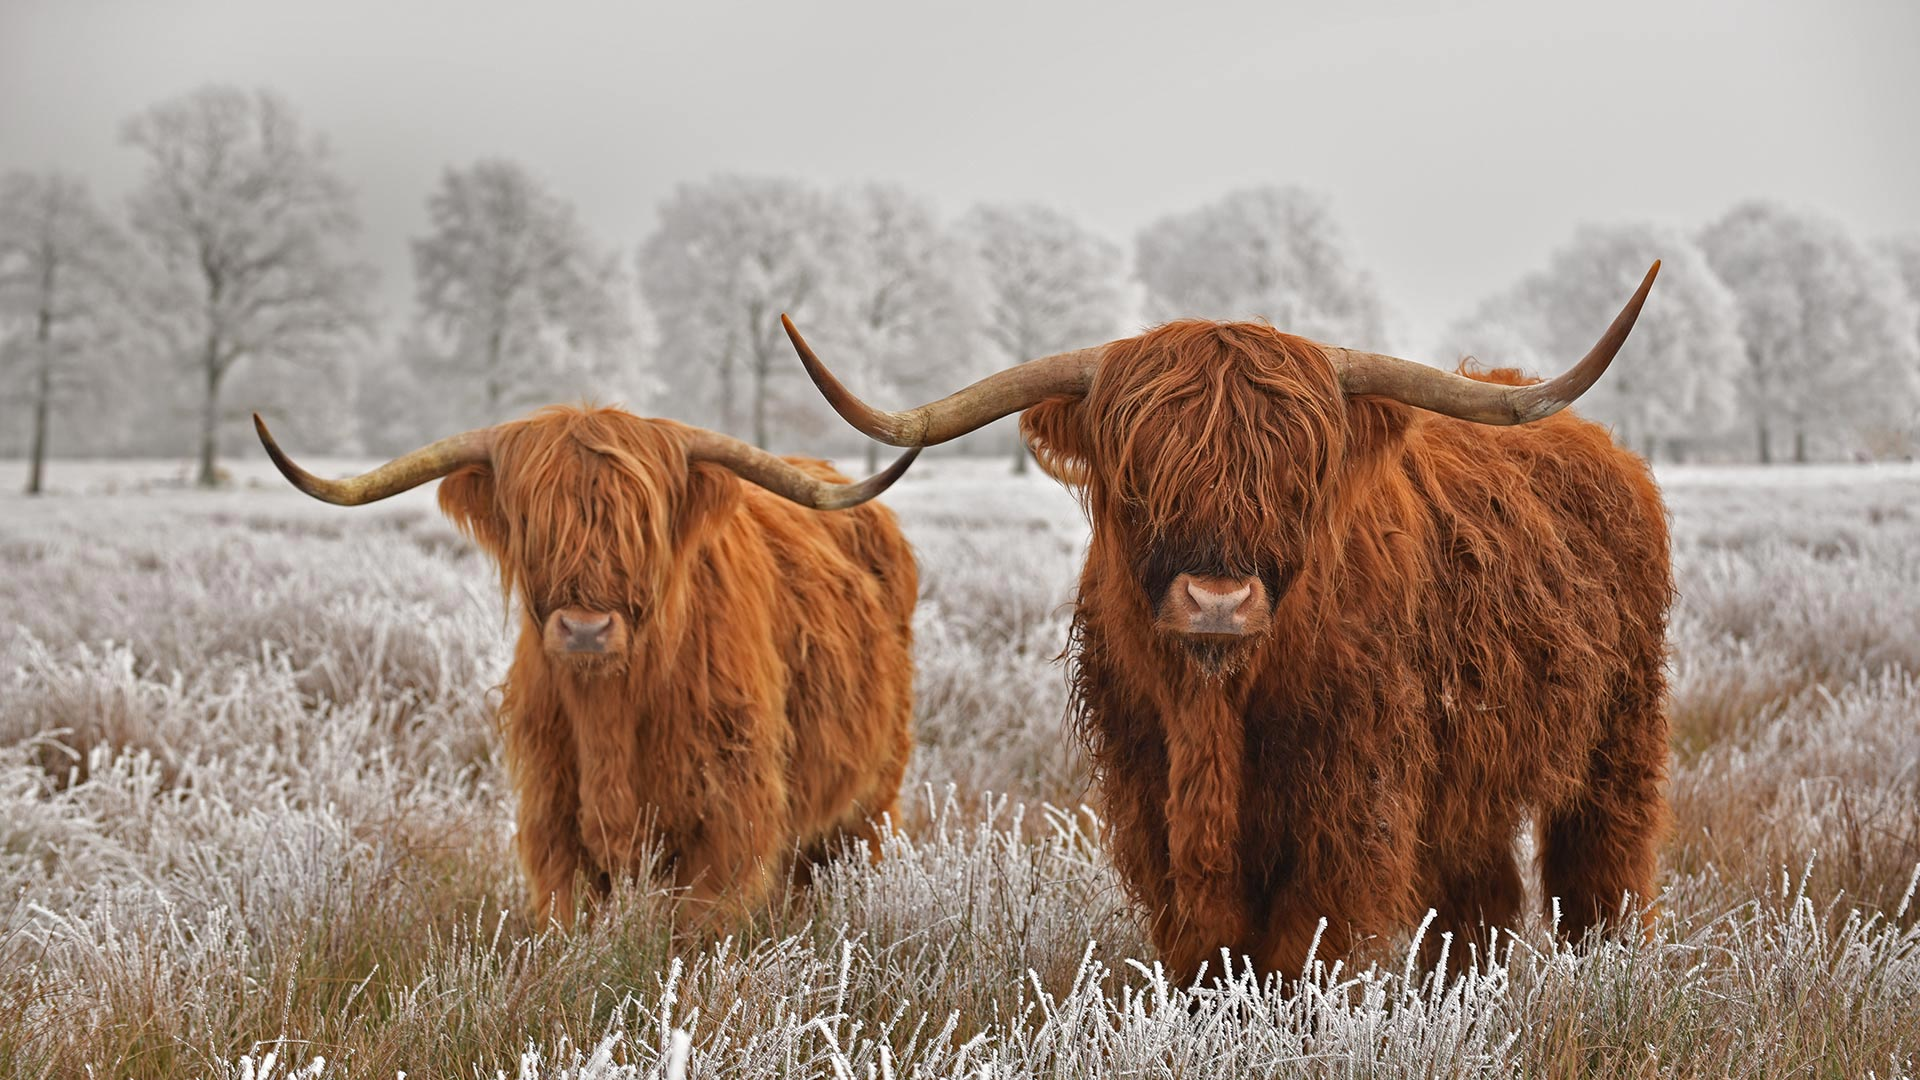 Highland cattle in Drenthe province in the Netherlands